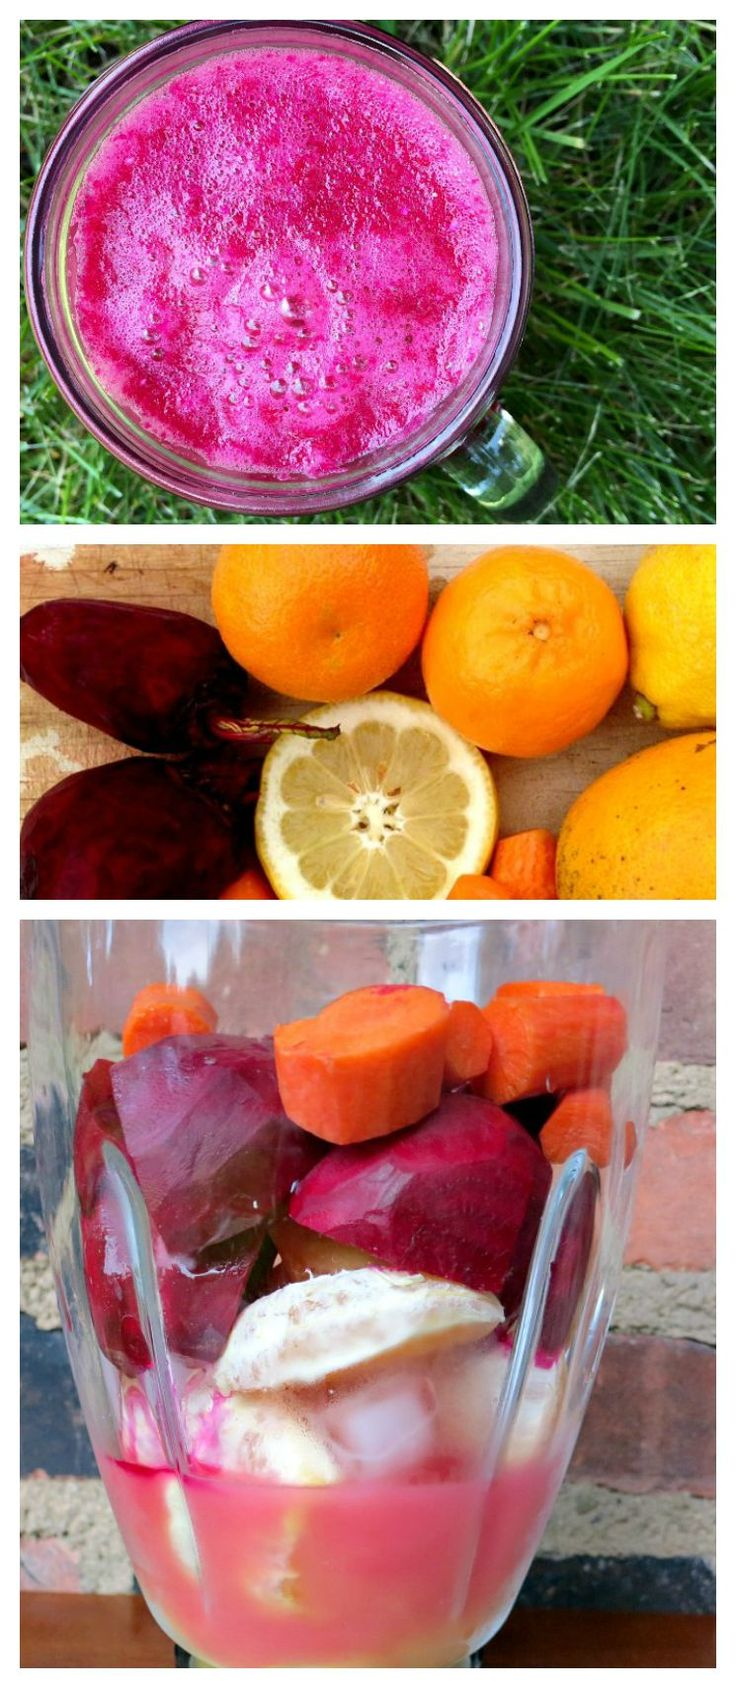 Beet Juice Smoothie. A healthy, tasty and refreshing way to work beets into your diet.